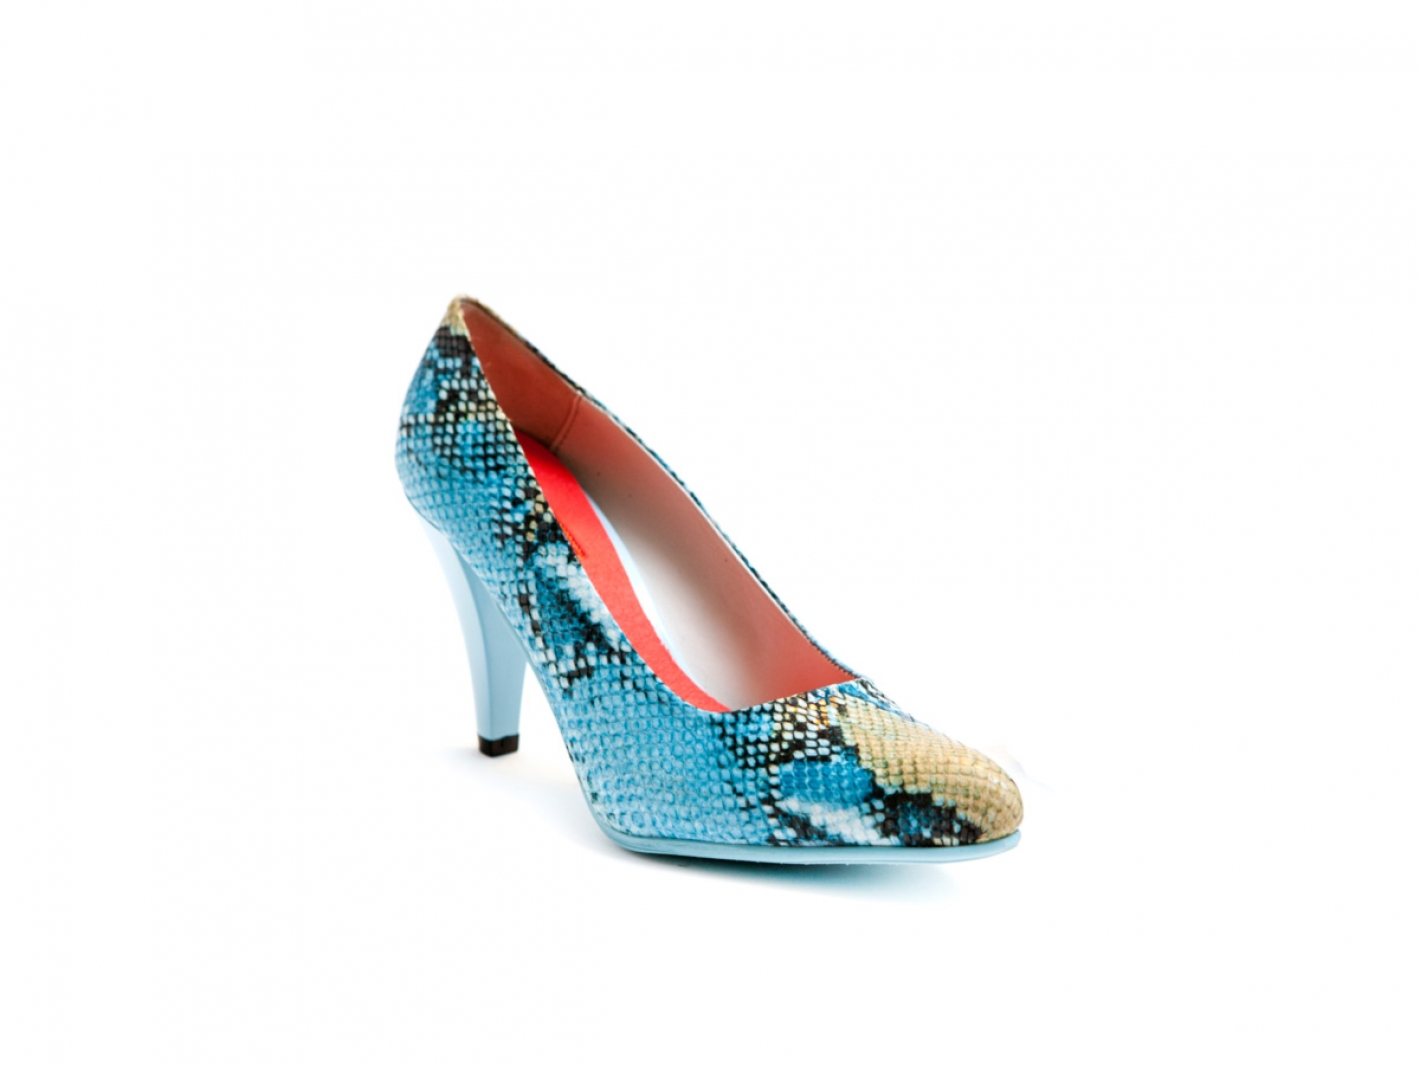 Loraine model shoe, made in turquoise cobra